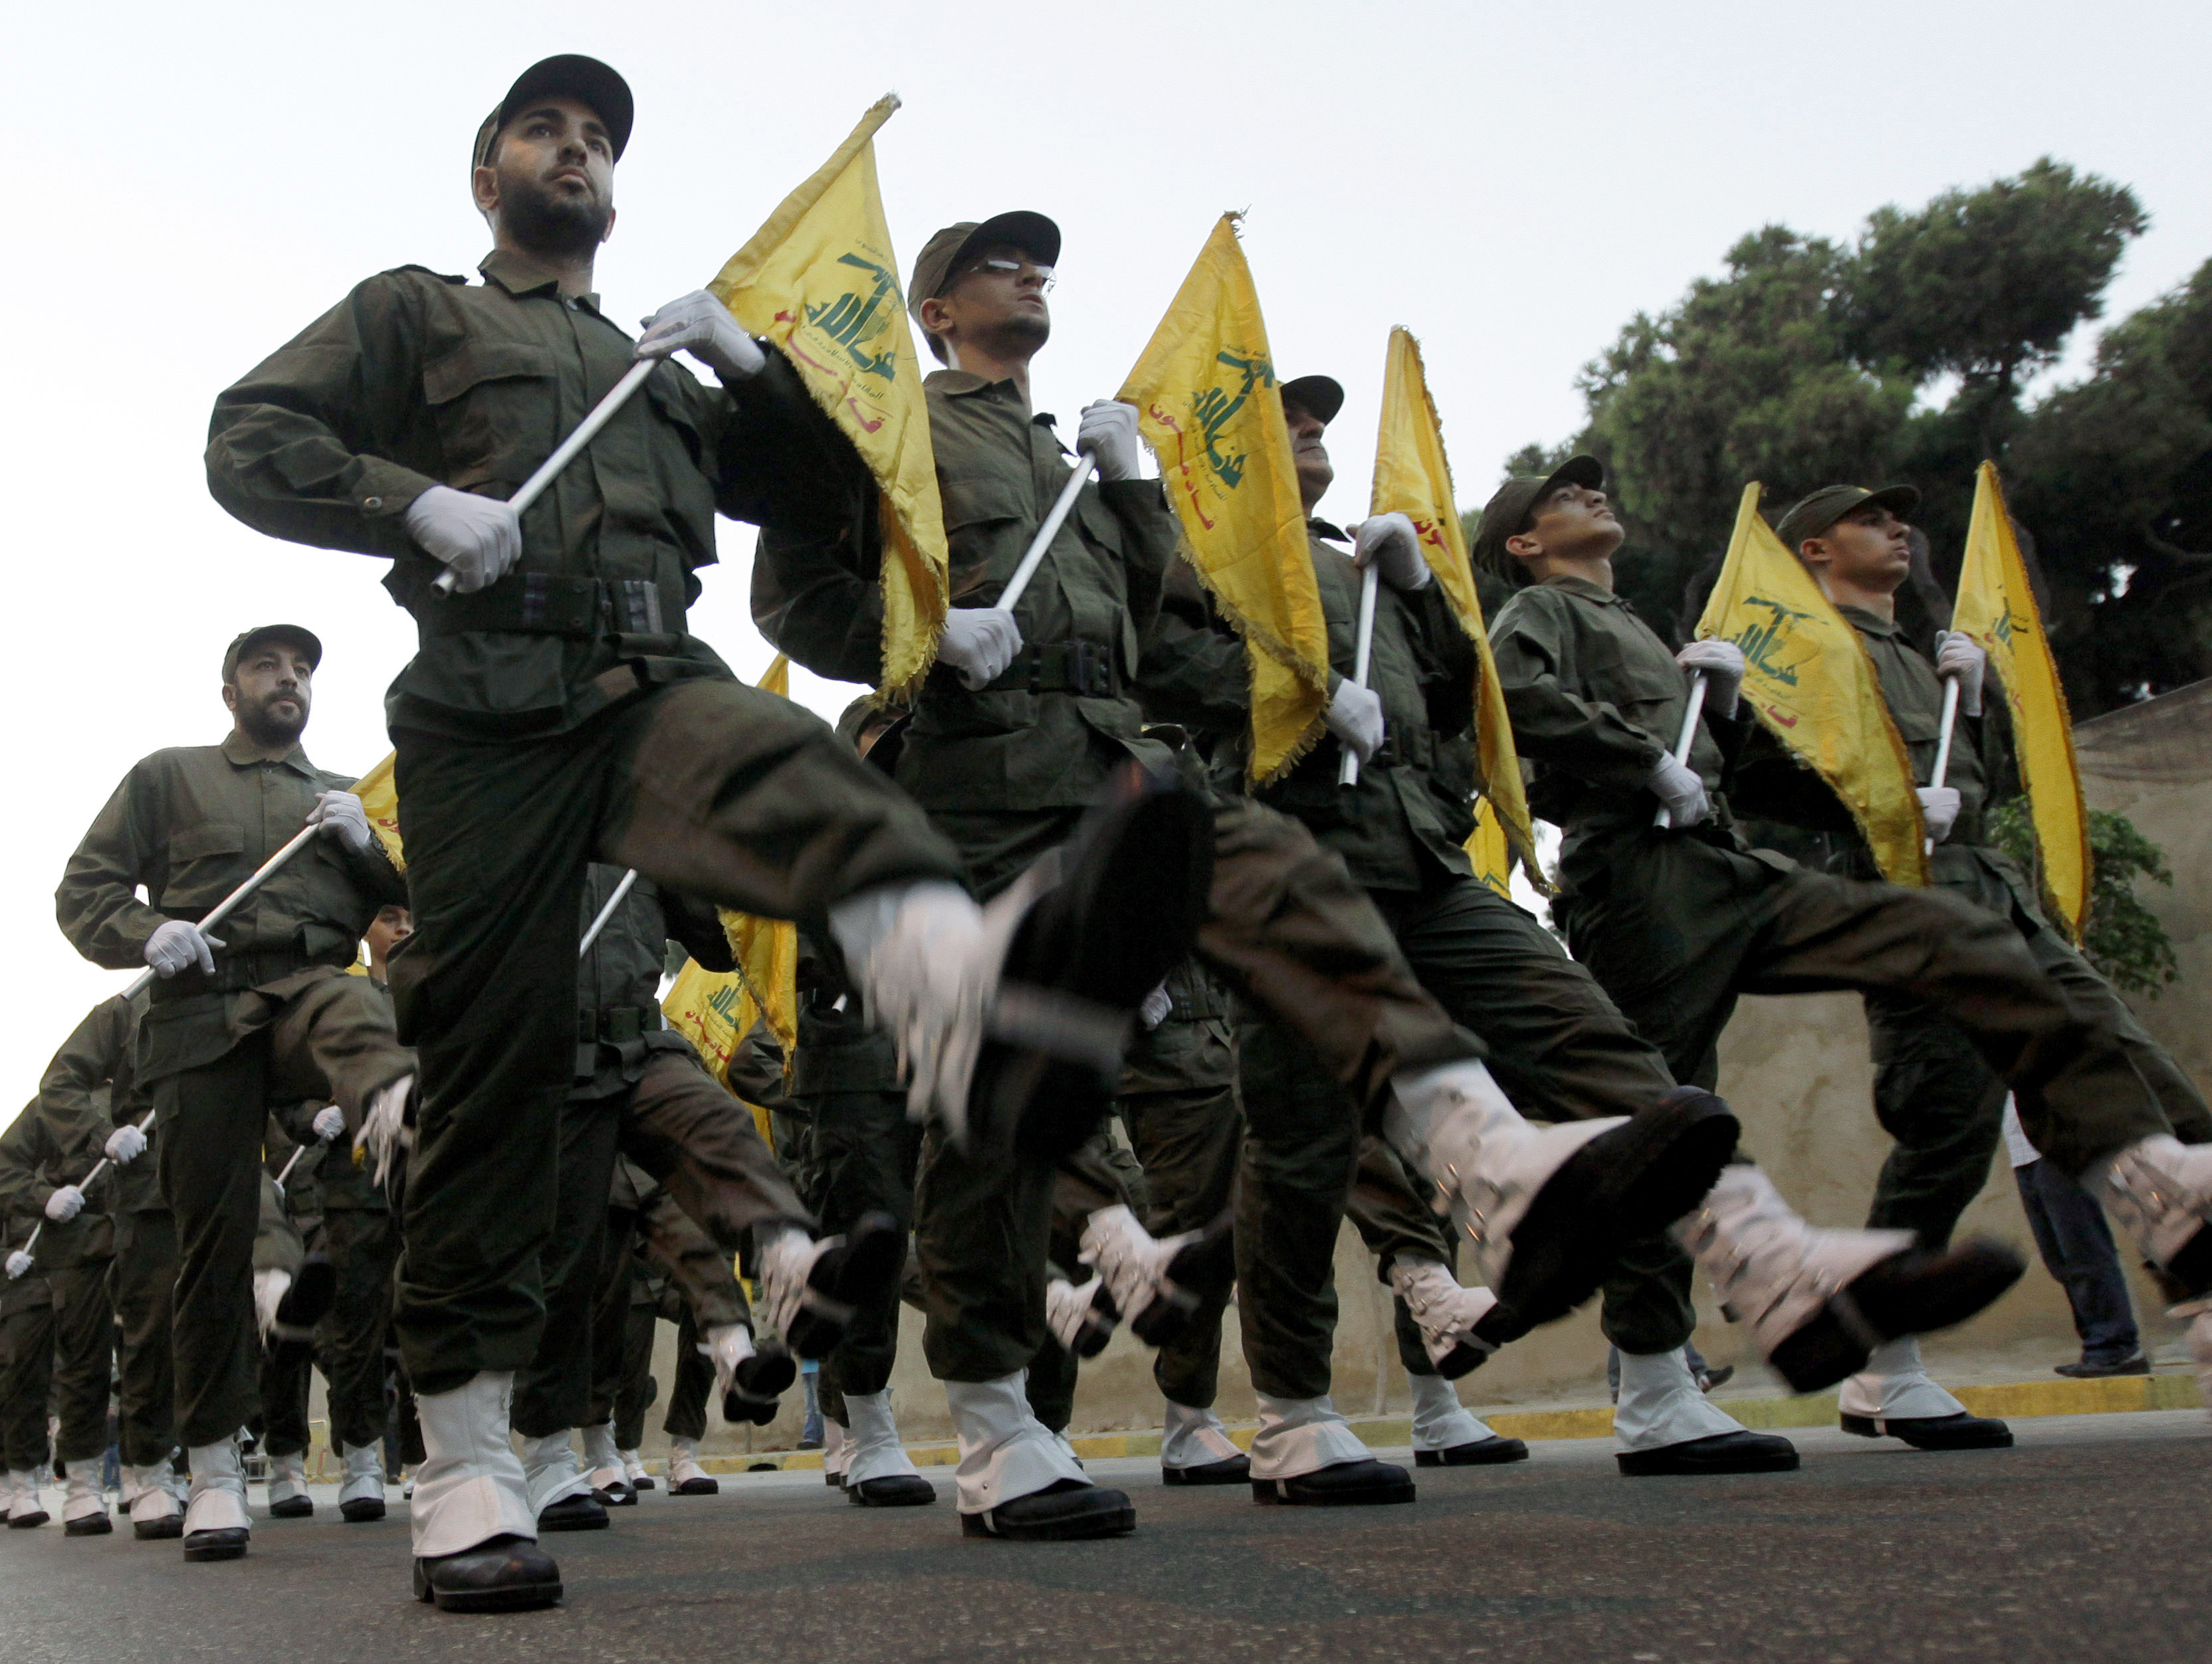 FILE - In this Nov. 12, 2010 file photo, Hezbollah fighters parade during the inauguration of a new cemetery for their fighters who died in fighting against Israel, in a southern suburb of Beirut, Lebanon. The British government will make inciting support for Hezbollah a criminal offense as senior officials accused the Iran-backed organization of destabilizing the Middle East. (AP Photo/Hussein Malla, File)